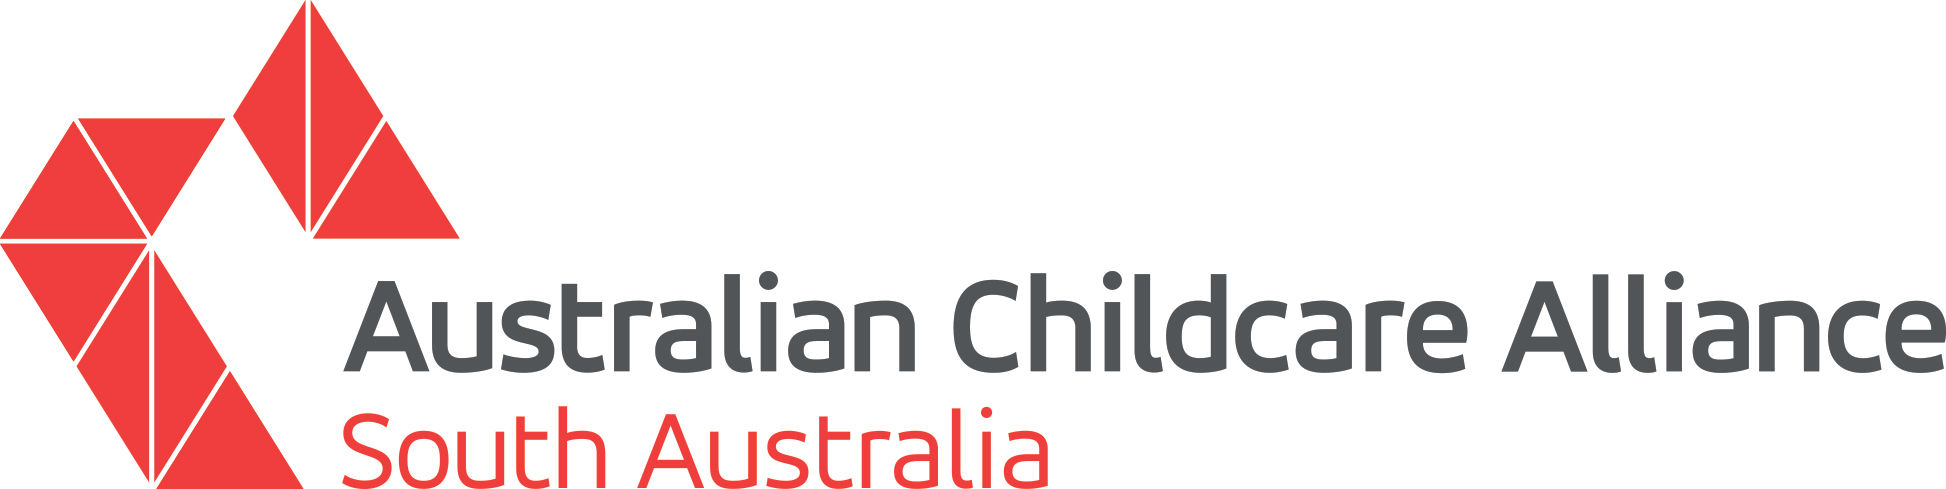 Australian Childcare Alliance SA